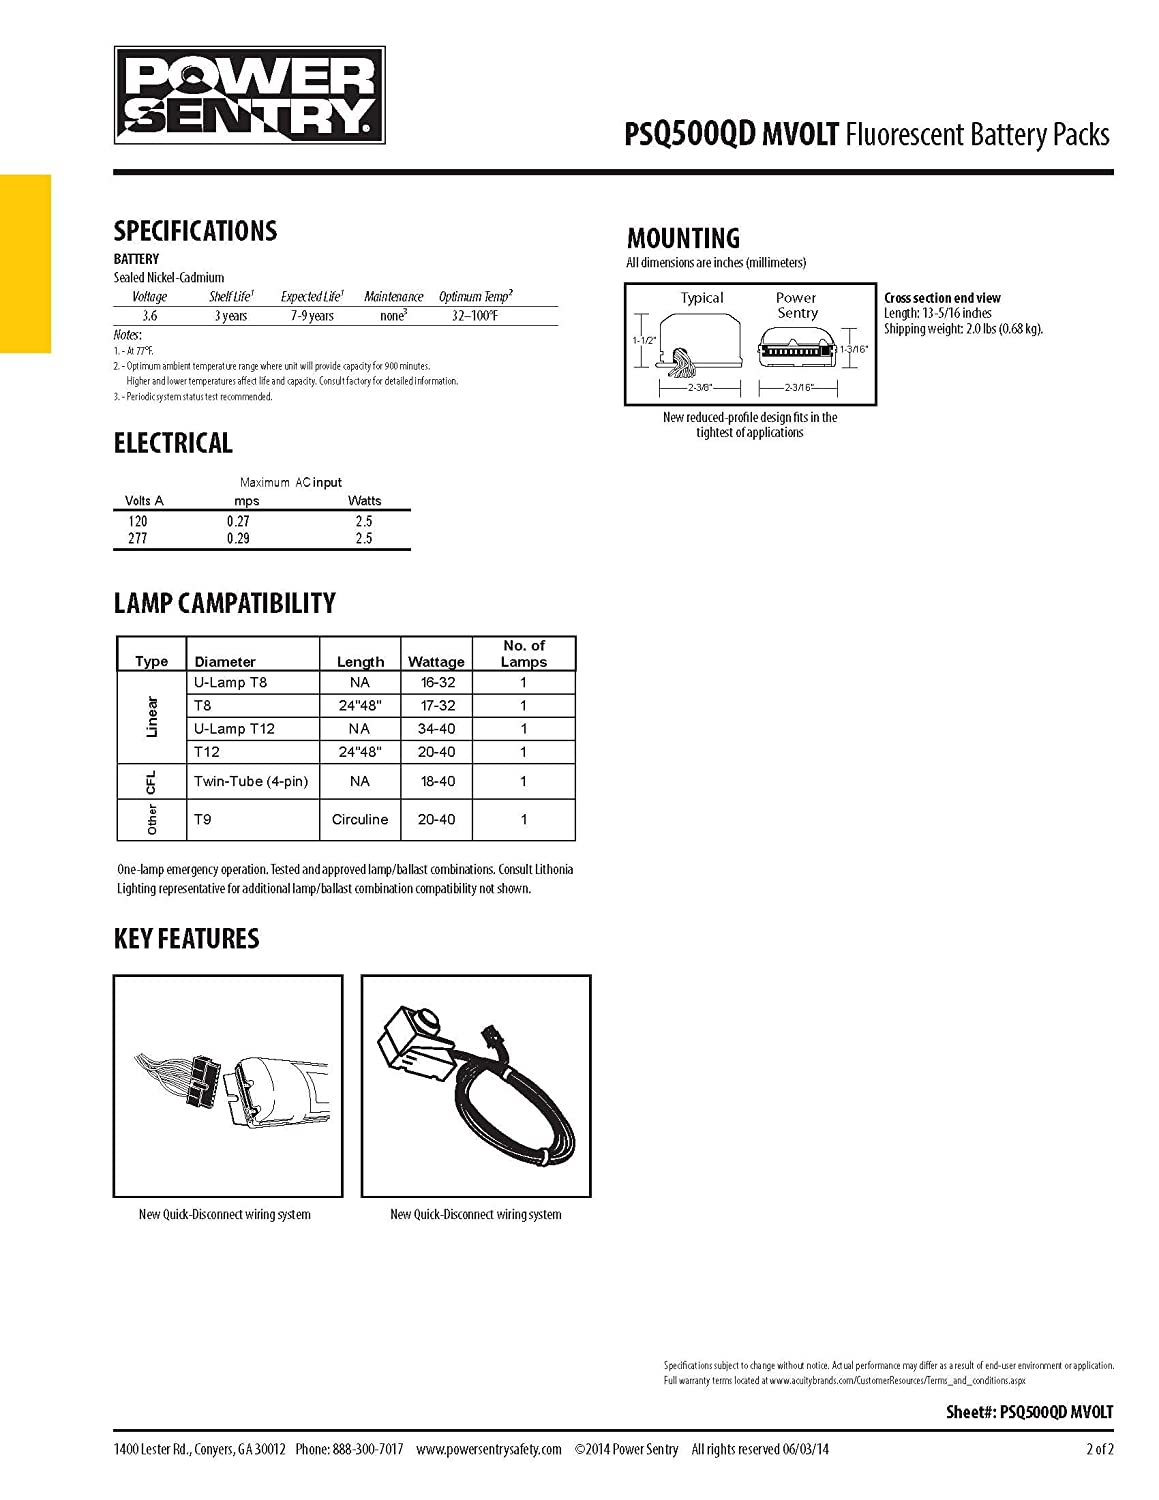 lithonia led light ballast wiring diagram